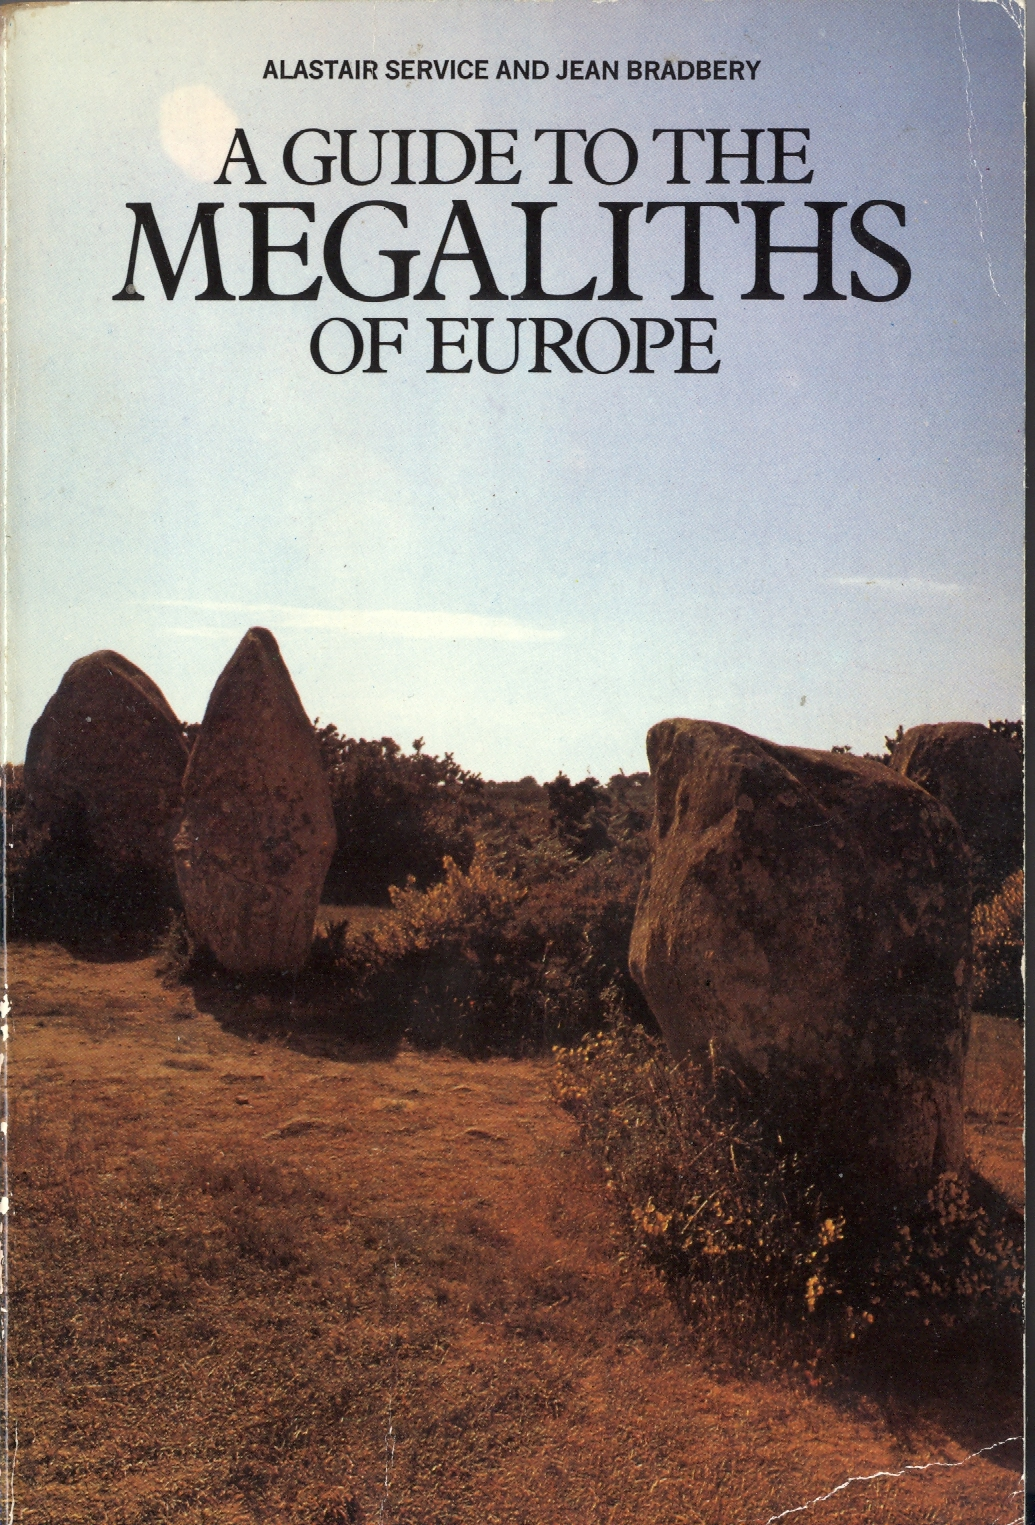 Guide to Megaliths of Europe